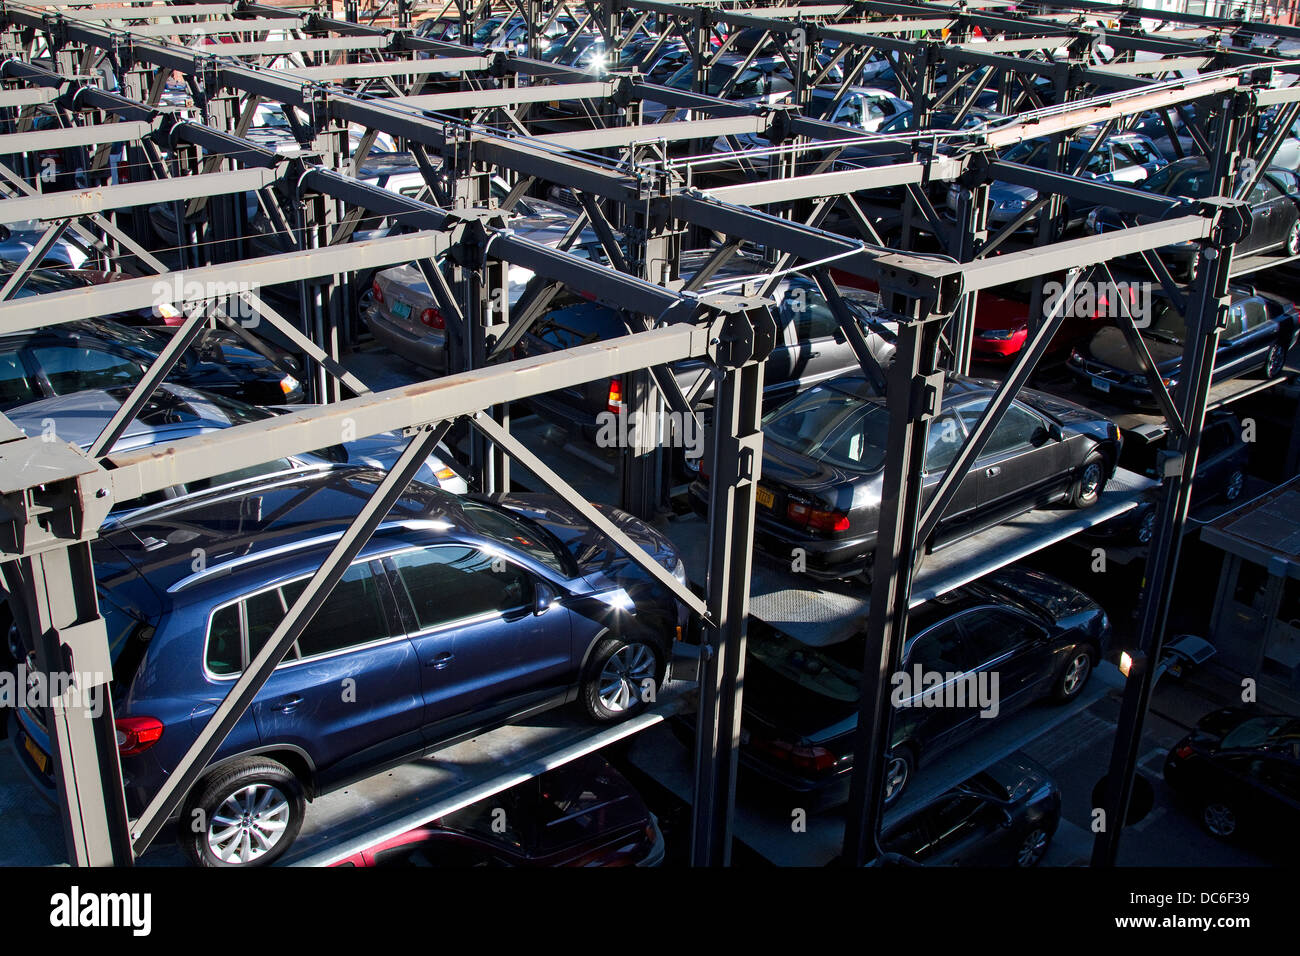 New York carpark, elevated parking garage with stacked cars. - Stock Image